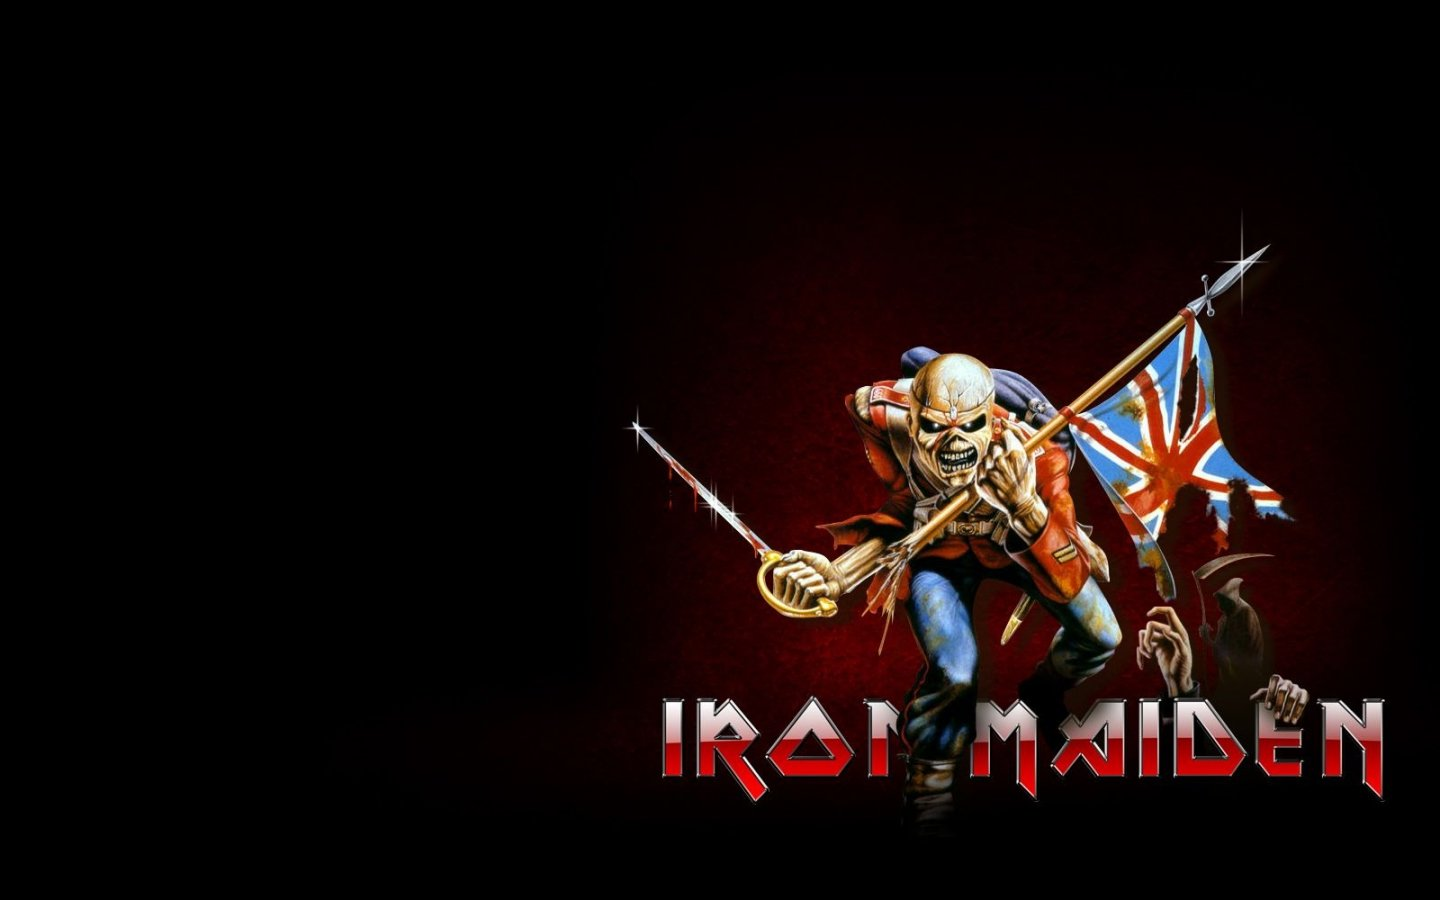 High Resolution Iron Maiden Hd 1440x900 Background ID72464 For PC